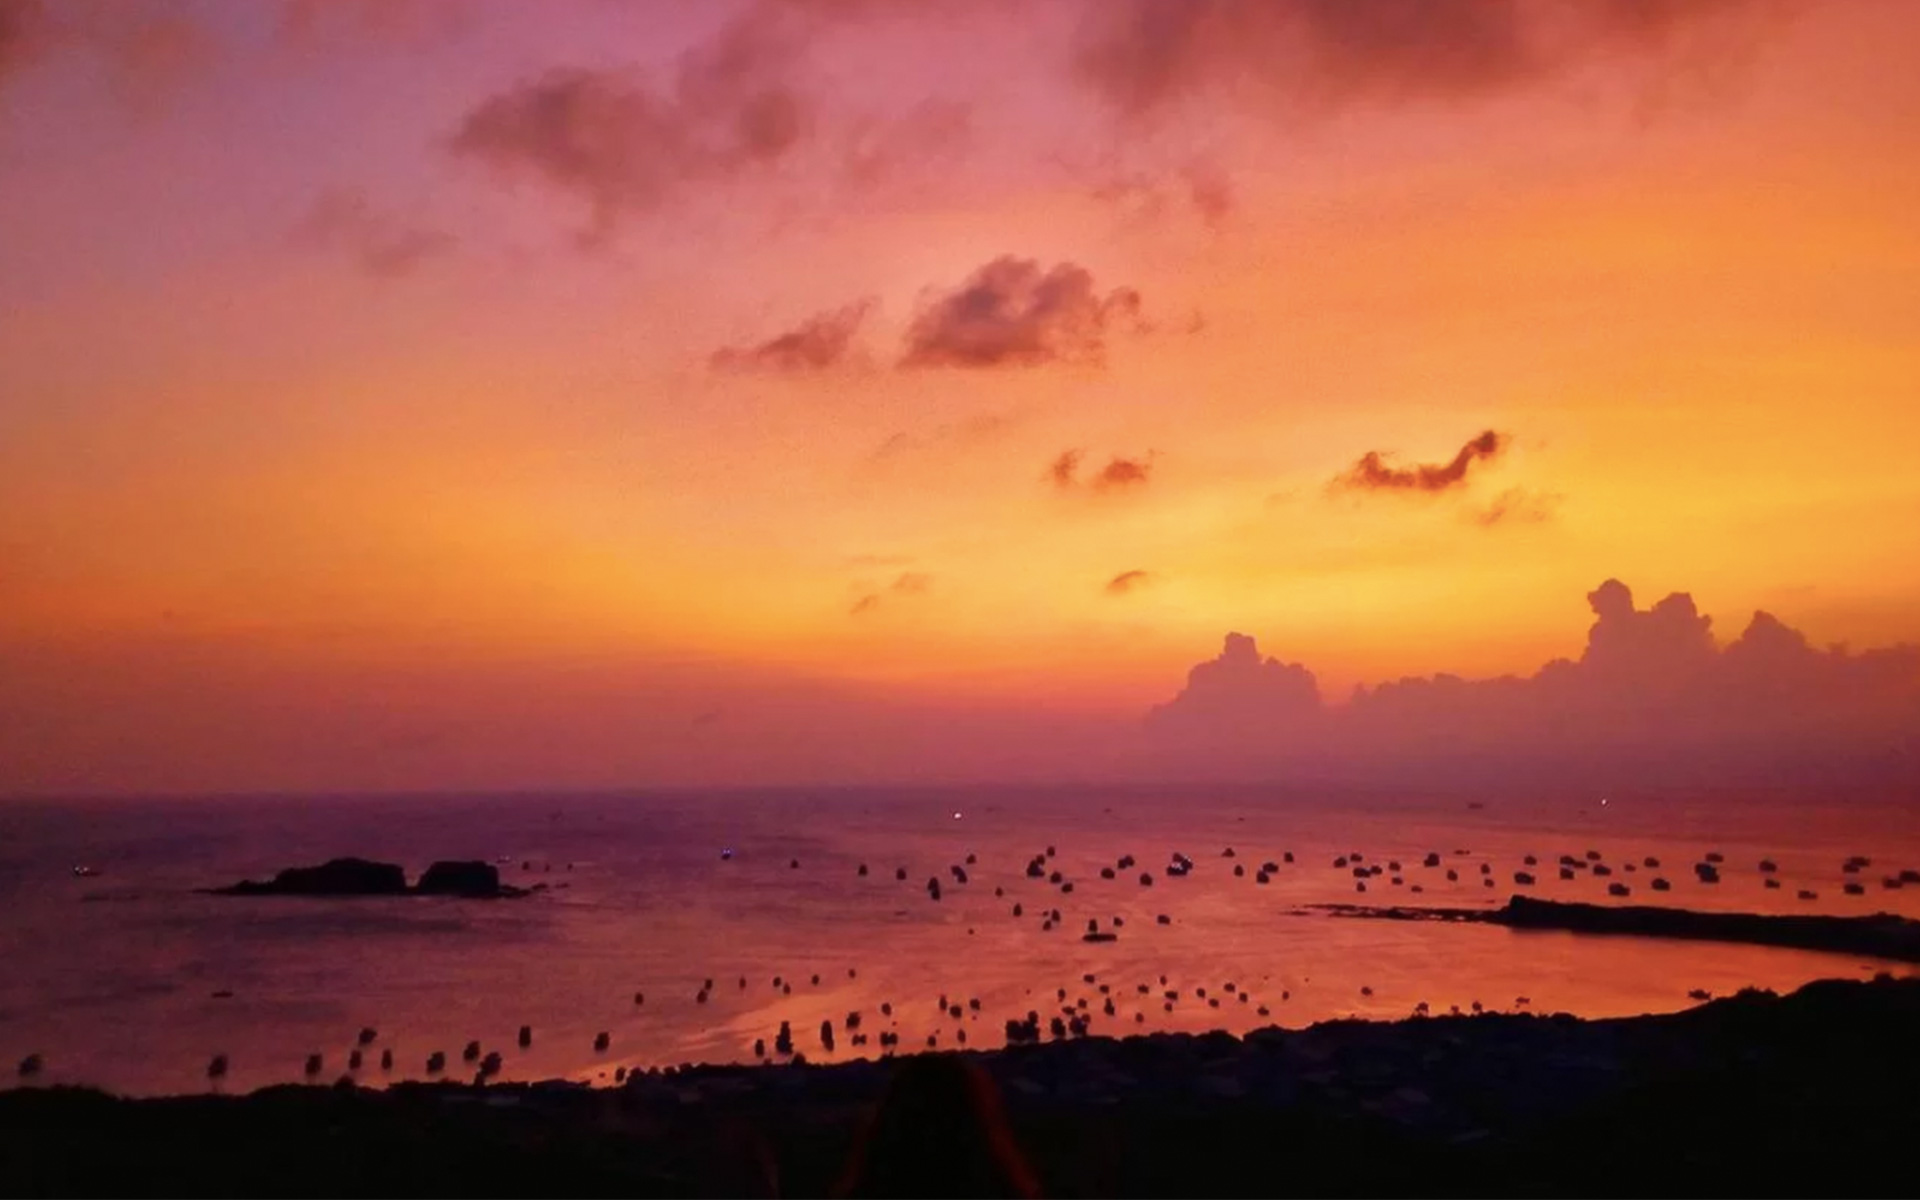 The breathtaking sceneries of Phu Quy island